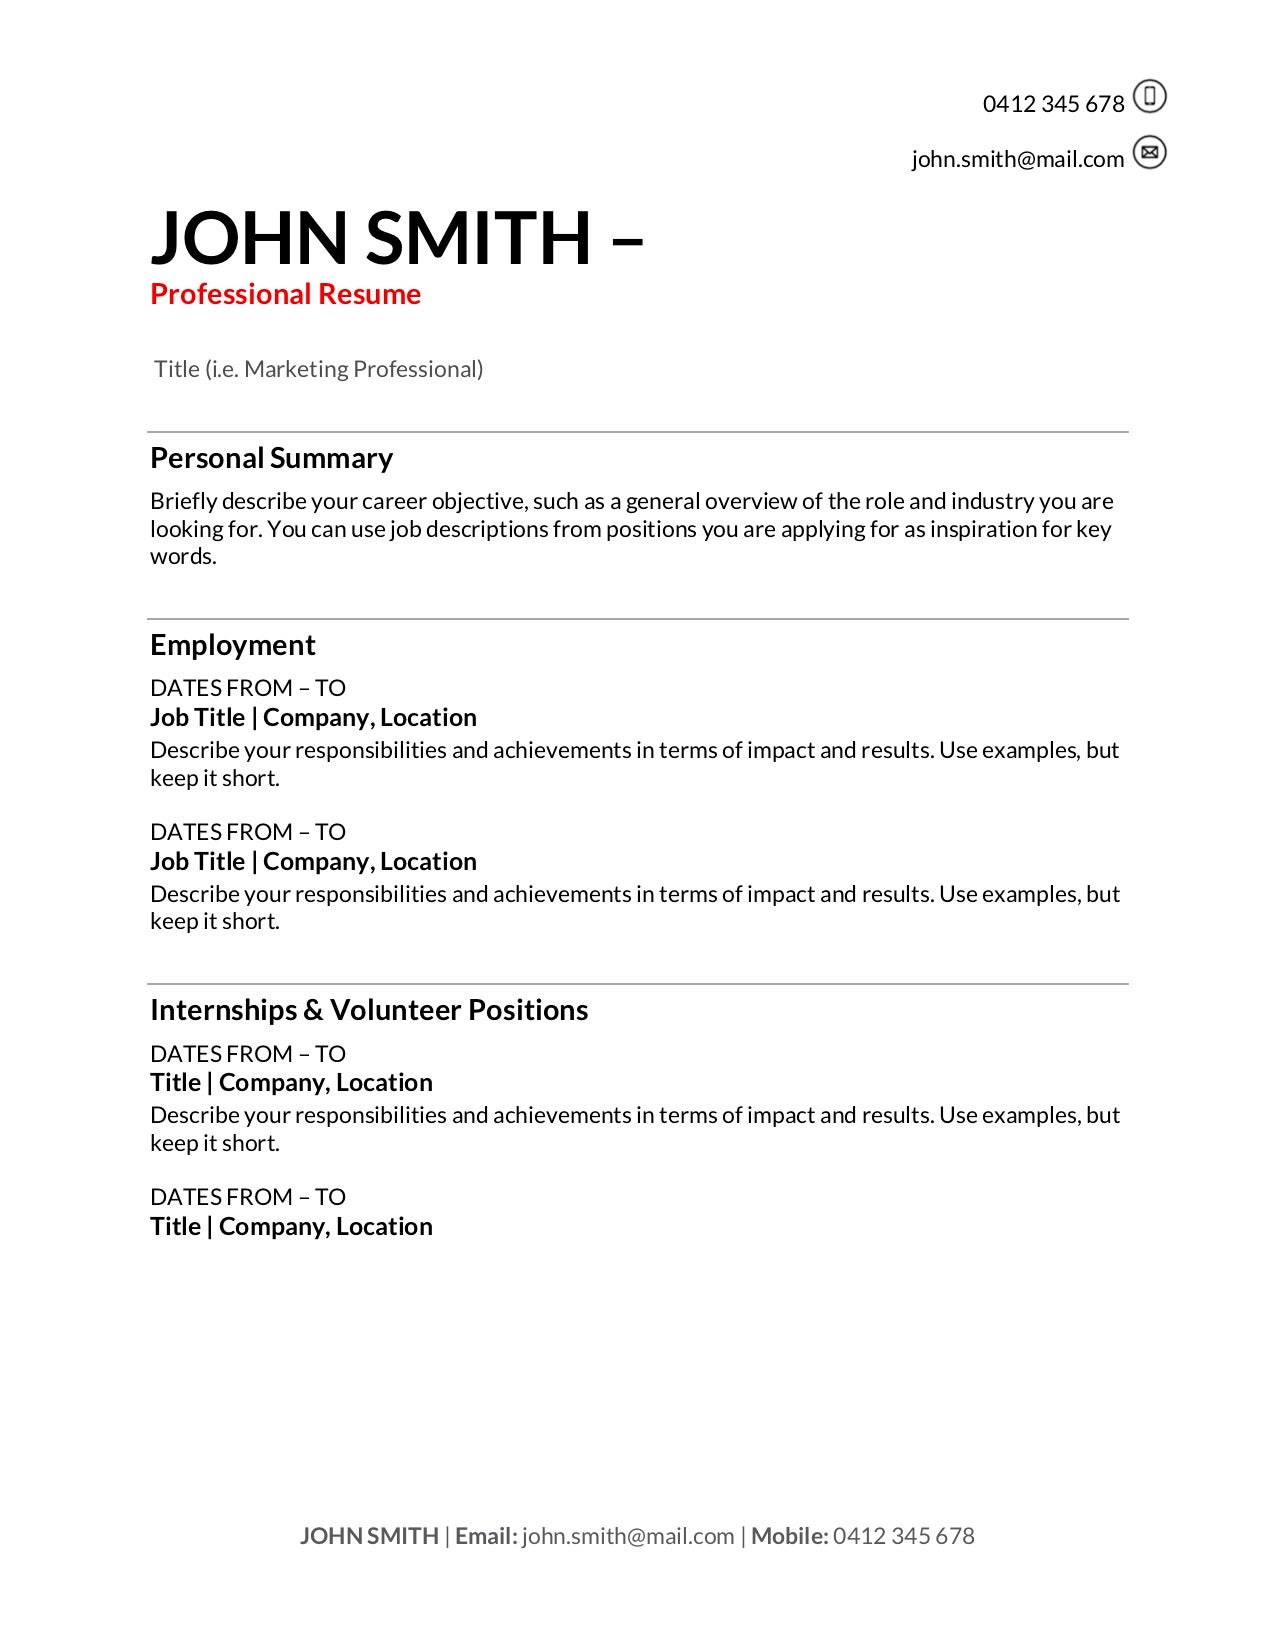 free resume templates to write in training au first job outline formulation fix up basic Resume First Job Resume Outline